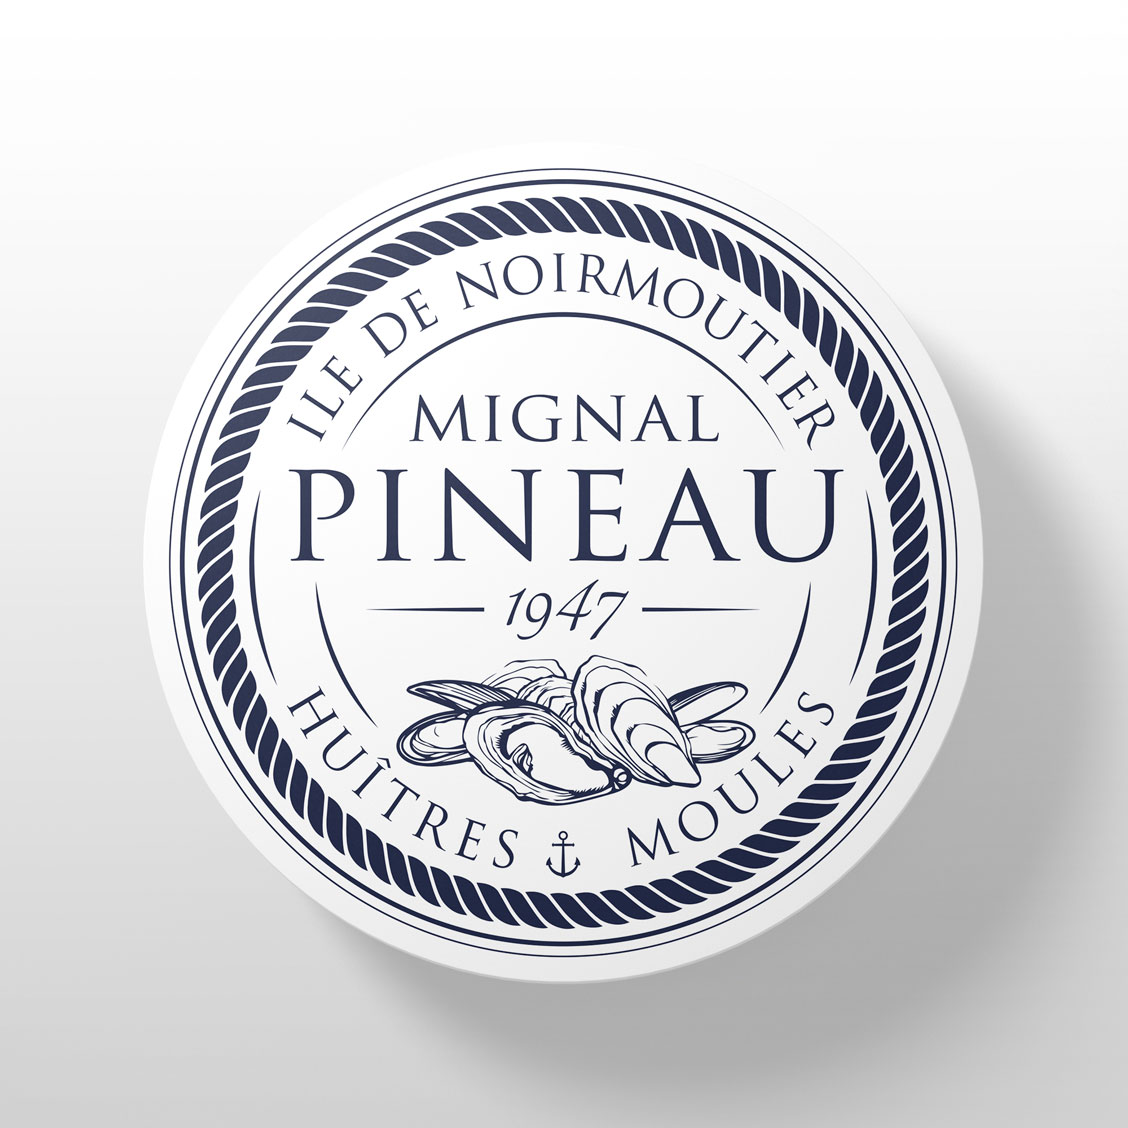 graffocean-creation-logo-noirmoutier-pineau-mignal